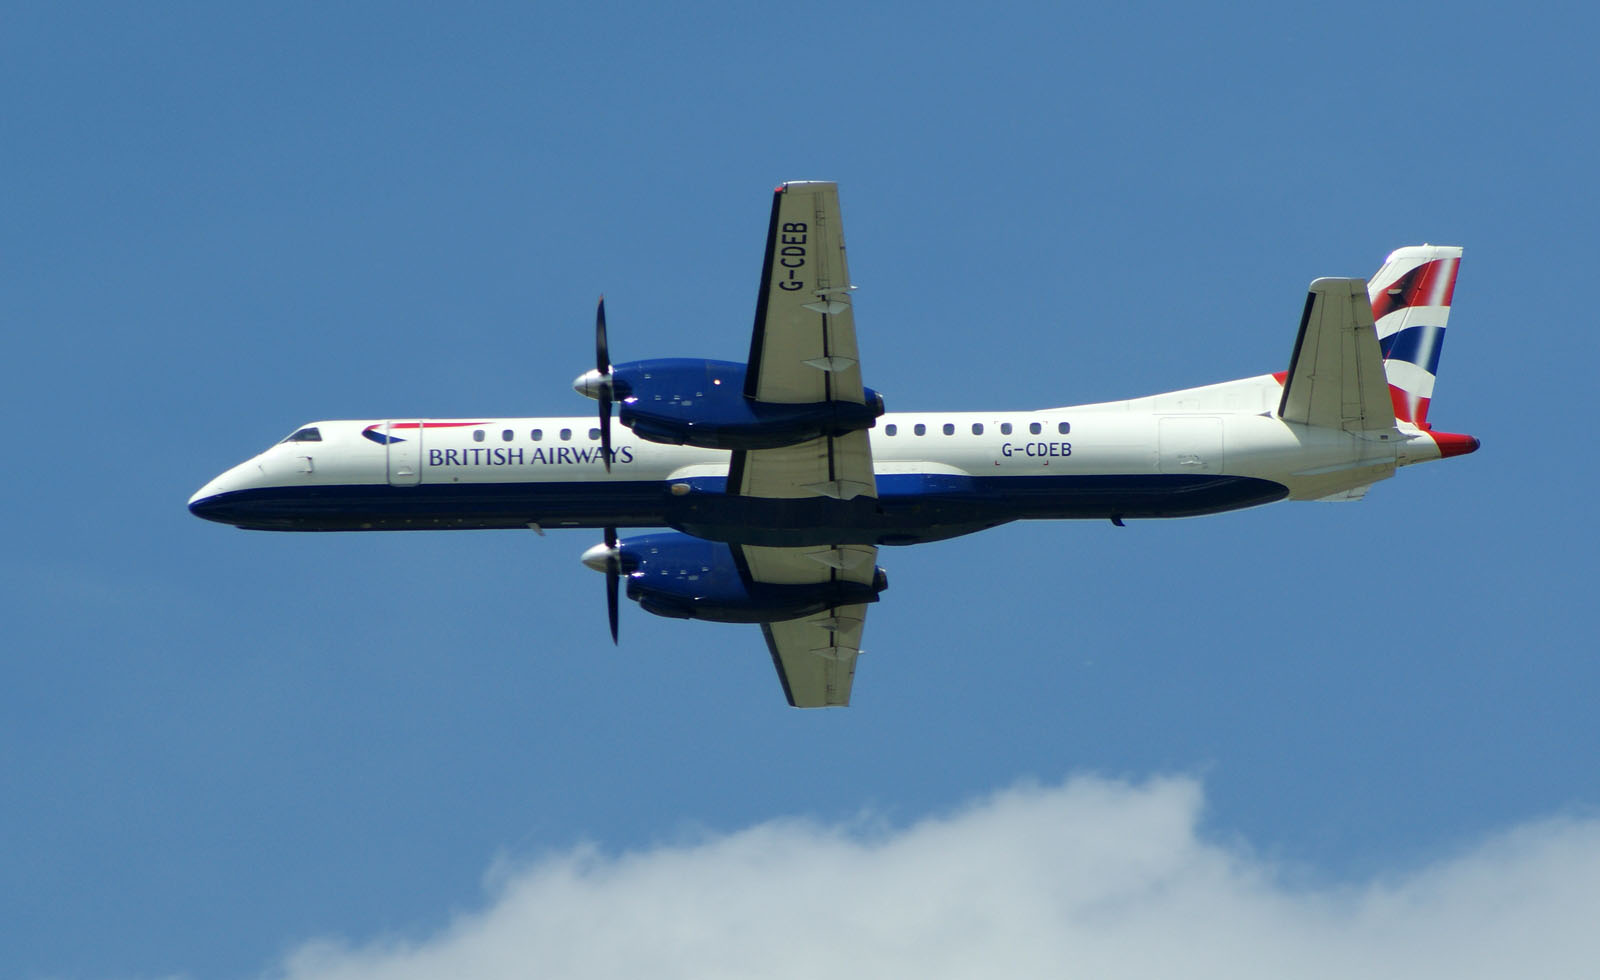 Saab 2000 G-CDEB British Airways